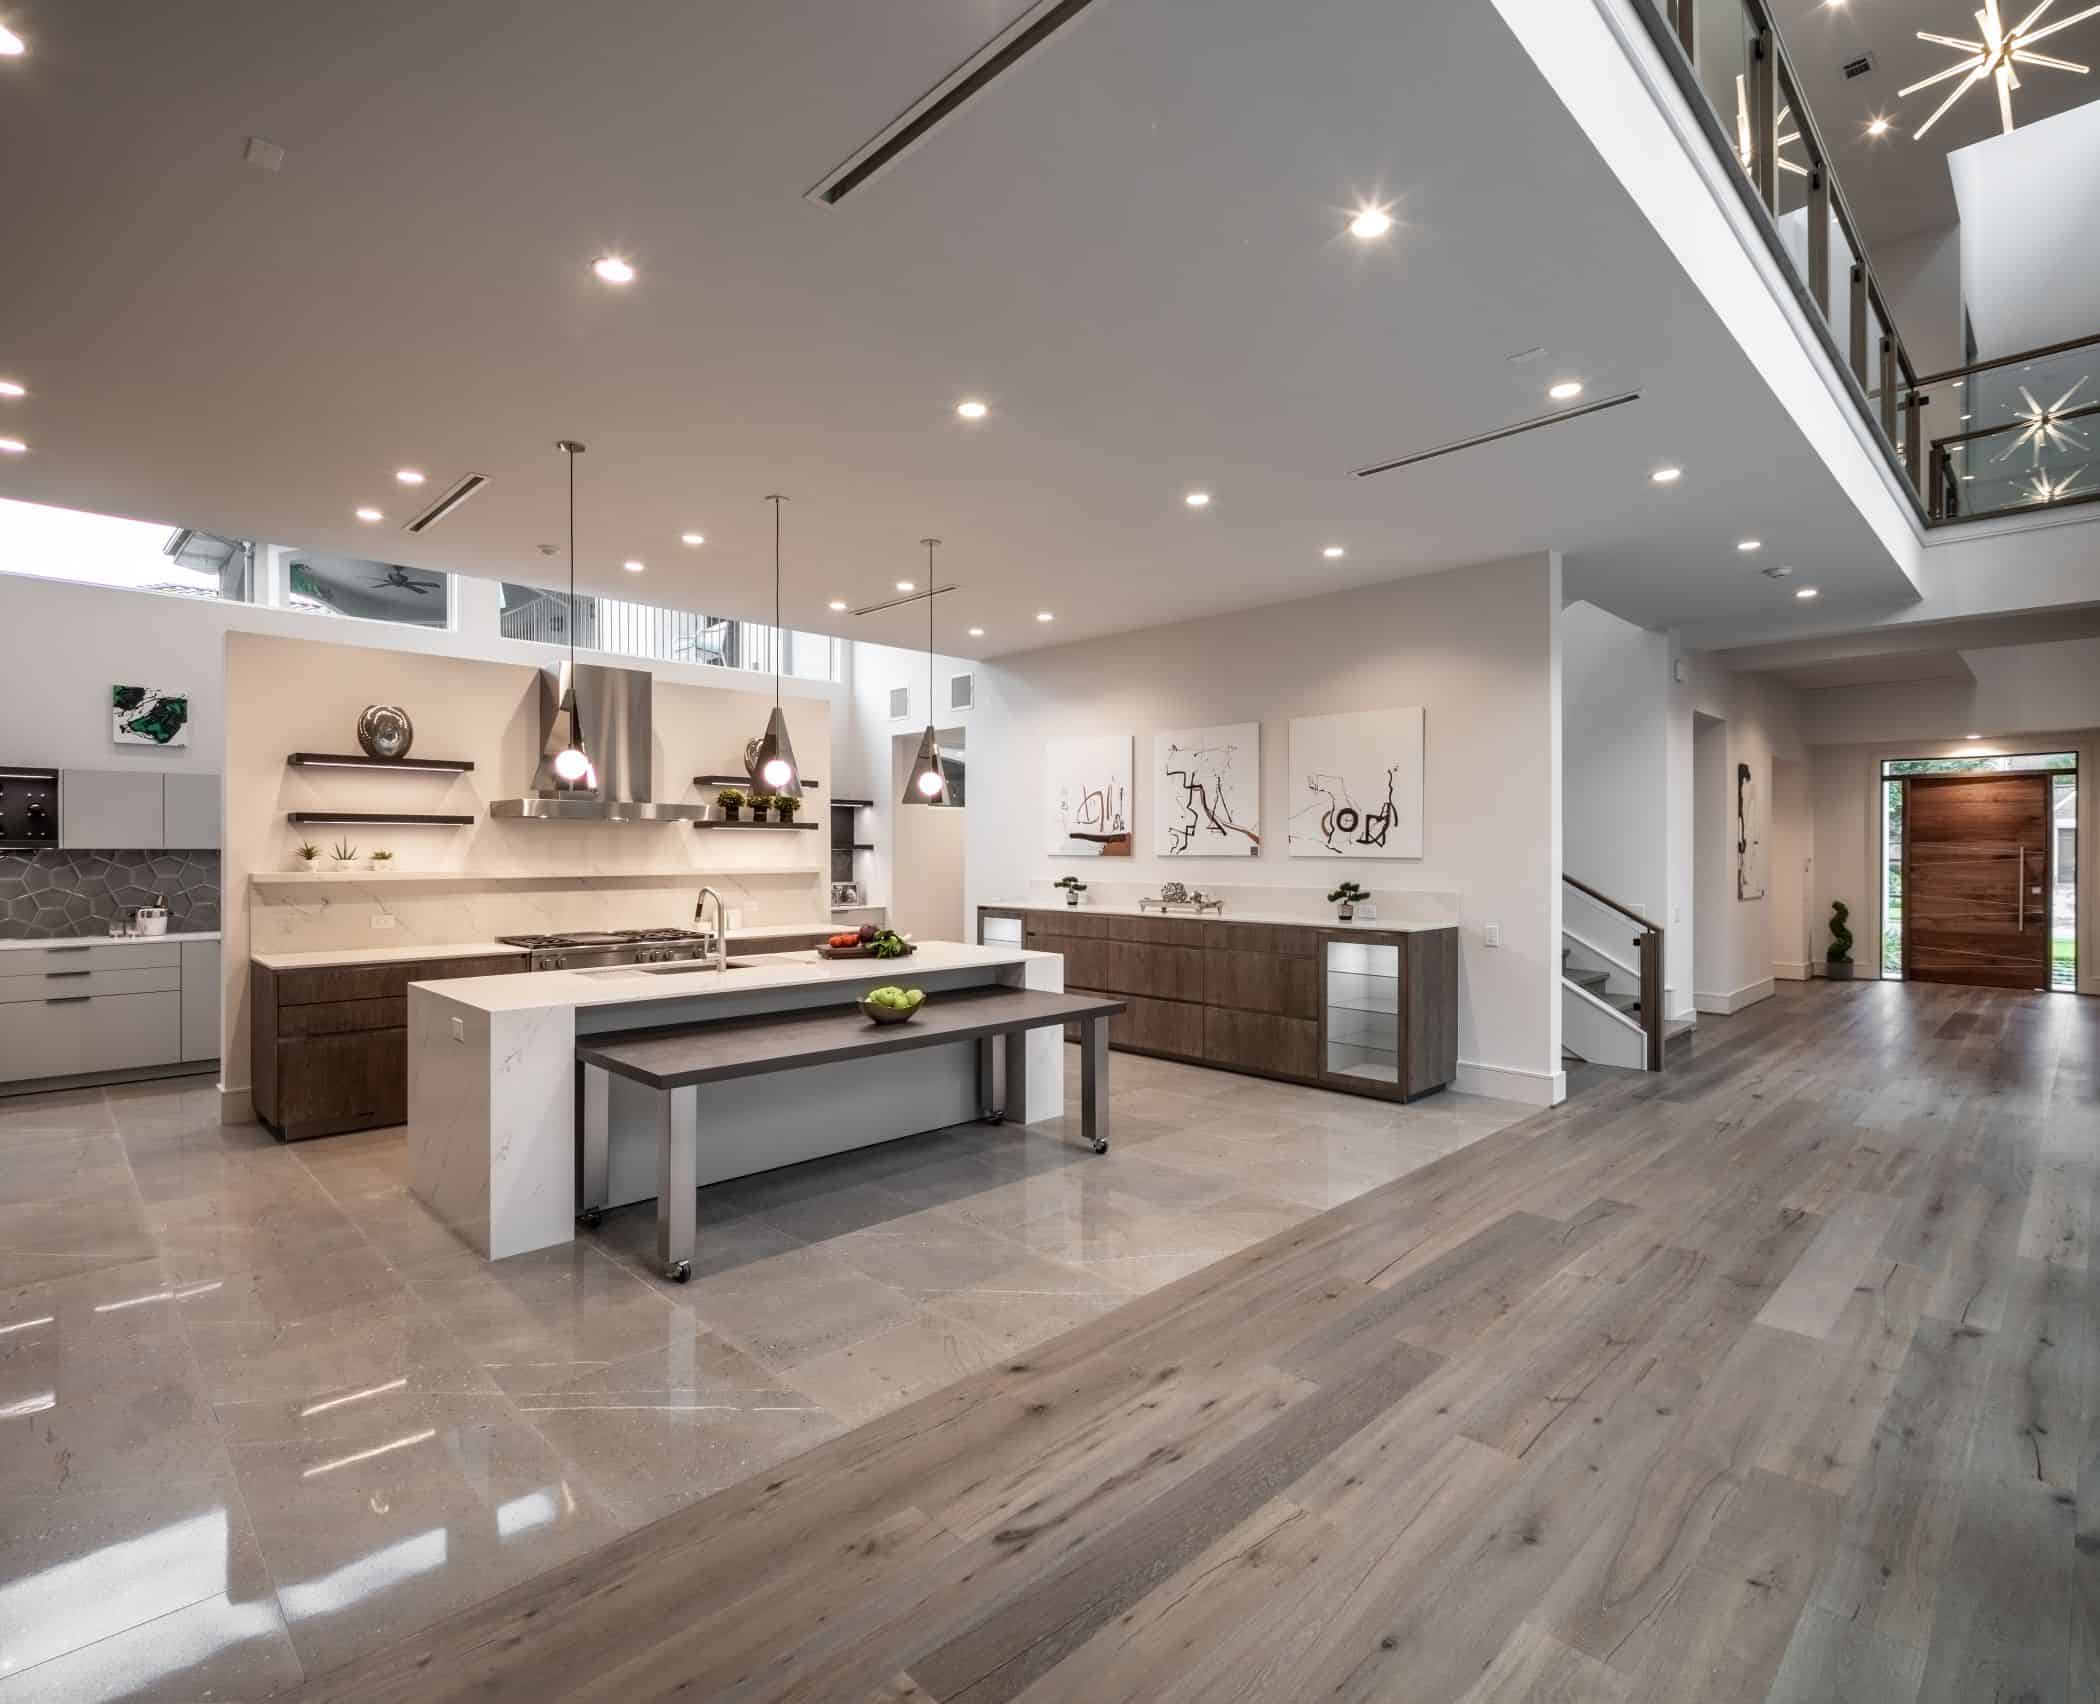 the new modern eggersmann kitchen in this a washington coalition memorial park area home in houston is off the grand foyer of this home